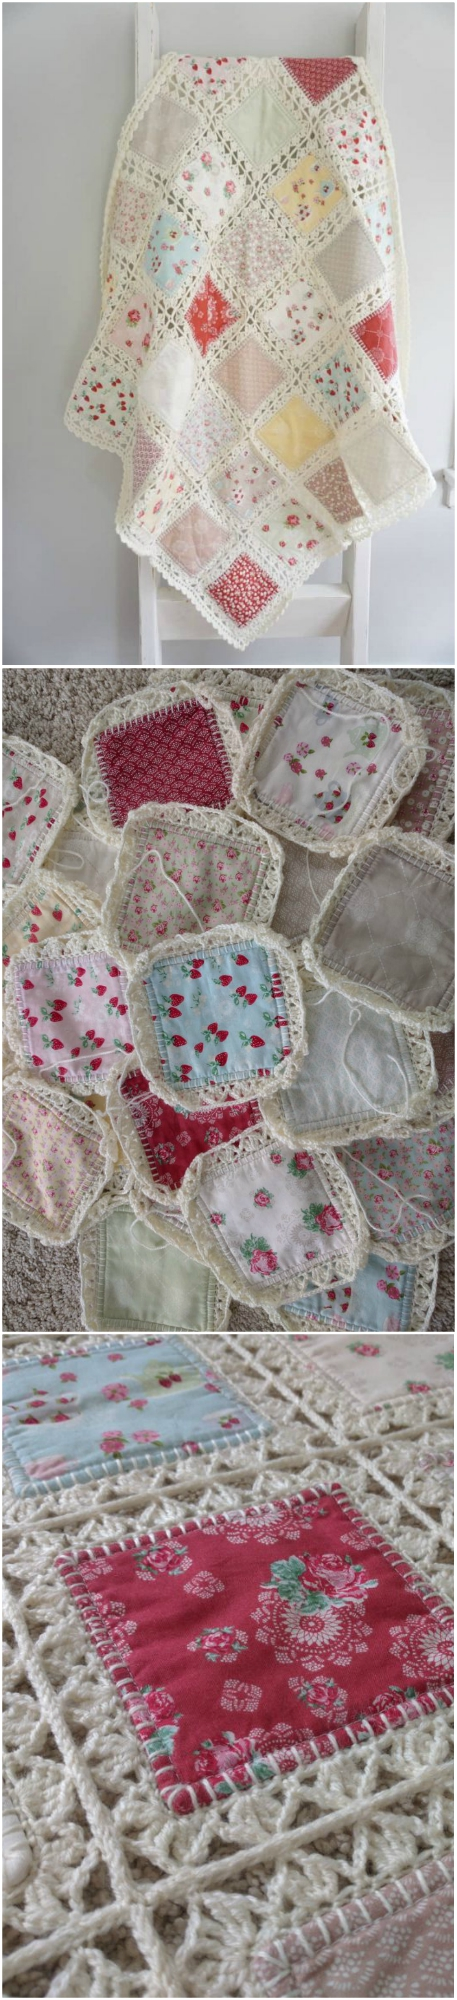 Fabric Crochet Quilt Is The Project Youve Been Looking For